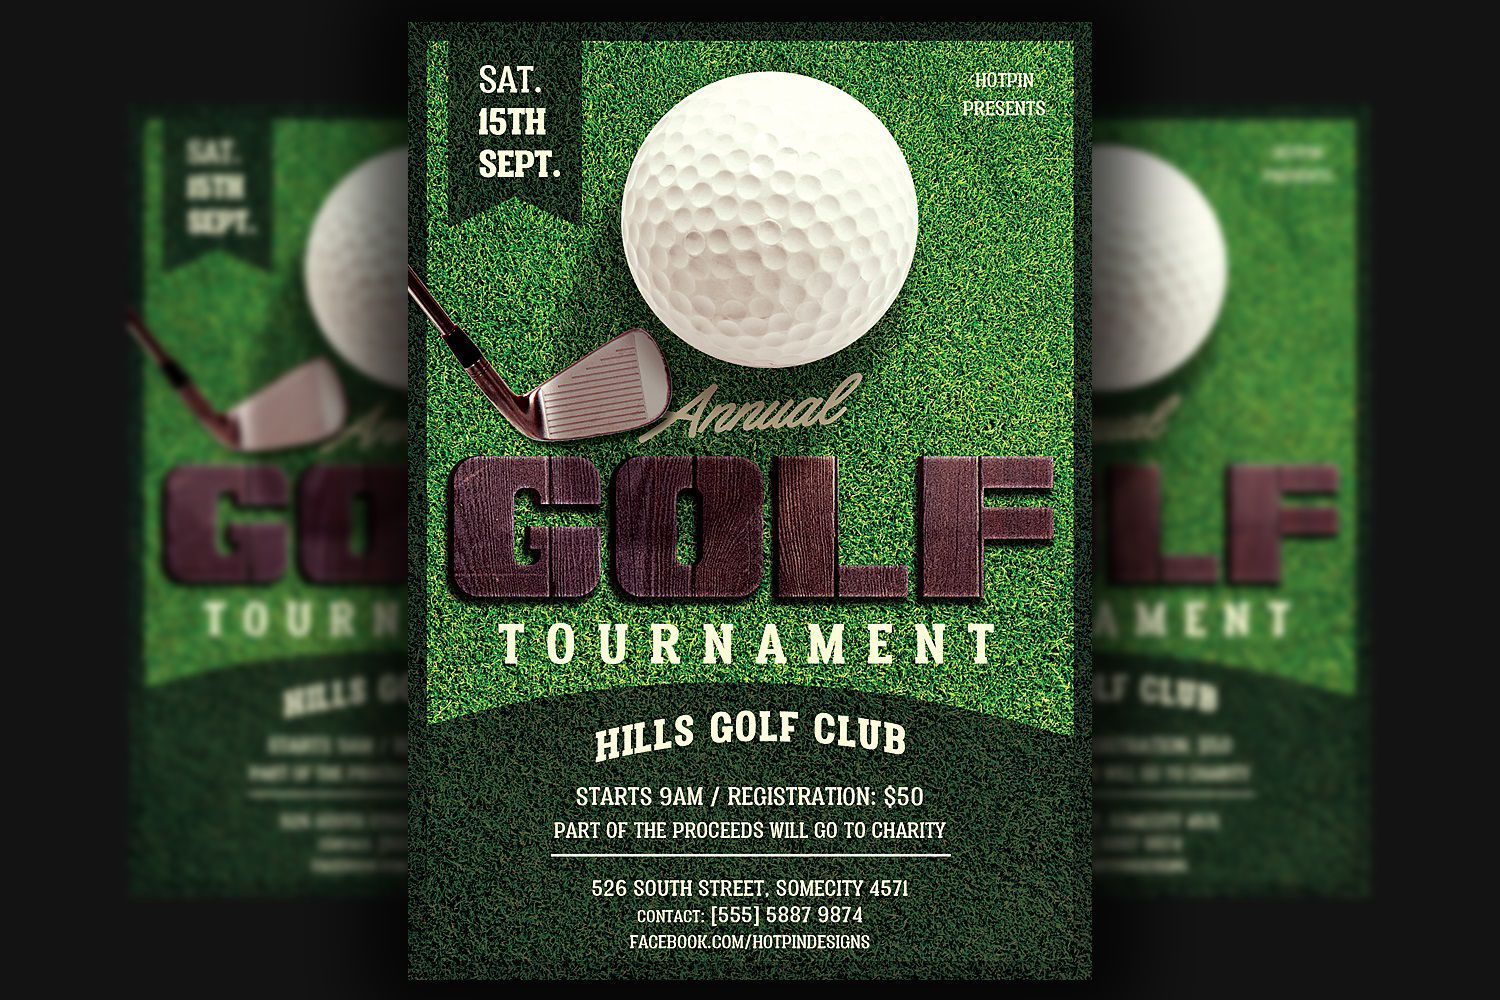 003 Surprising Golf Tournament Flyer Template Highest Quality  Word Free PdfFull